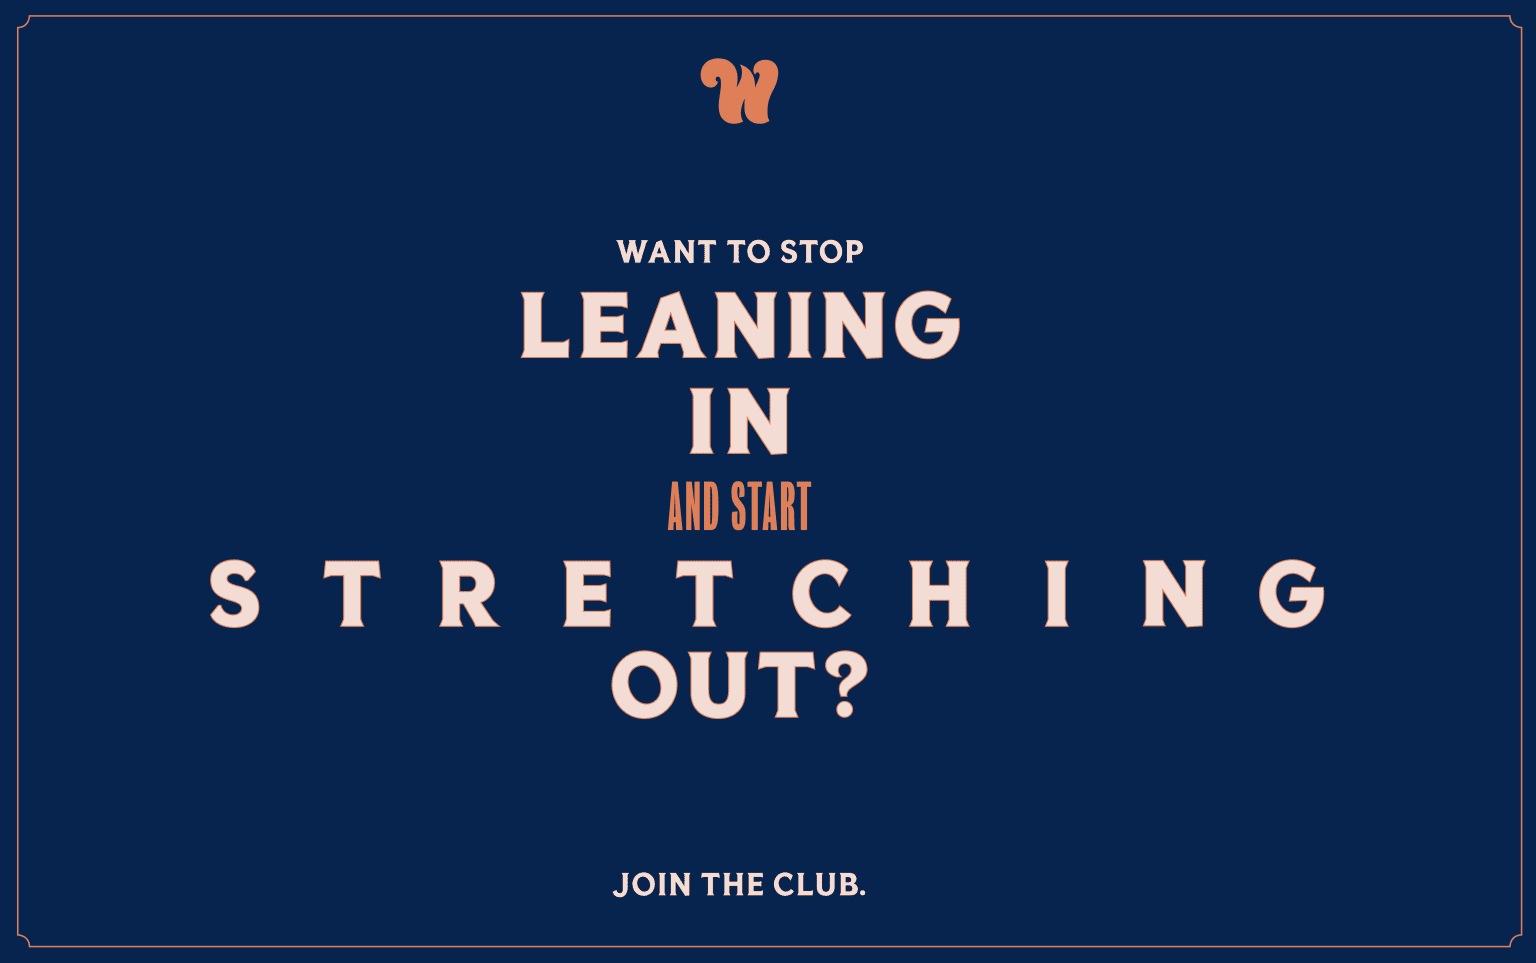 Join The Club Campaign